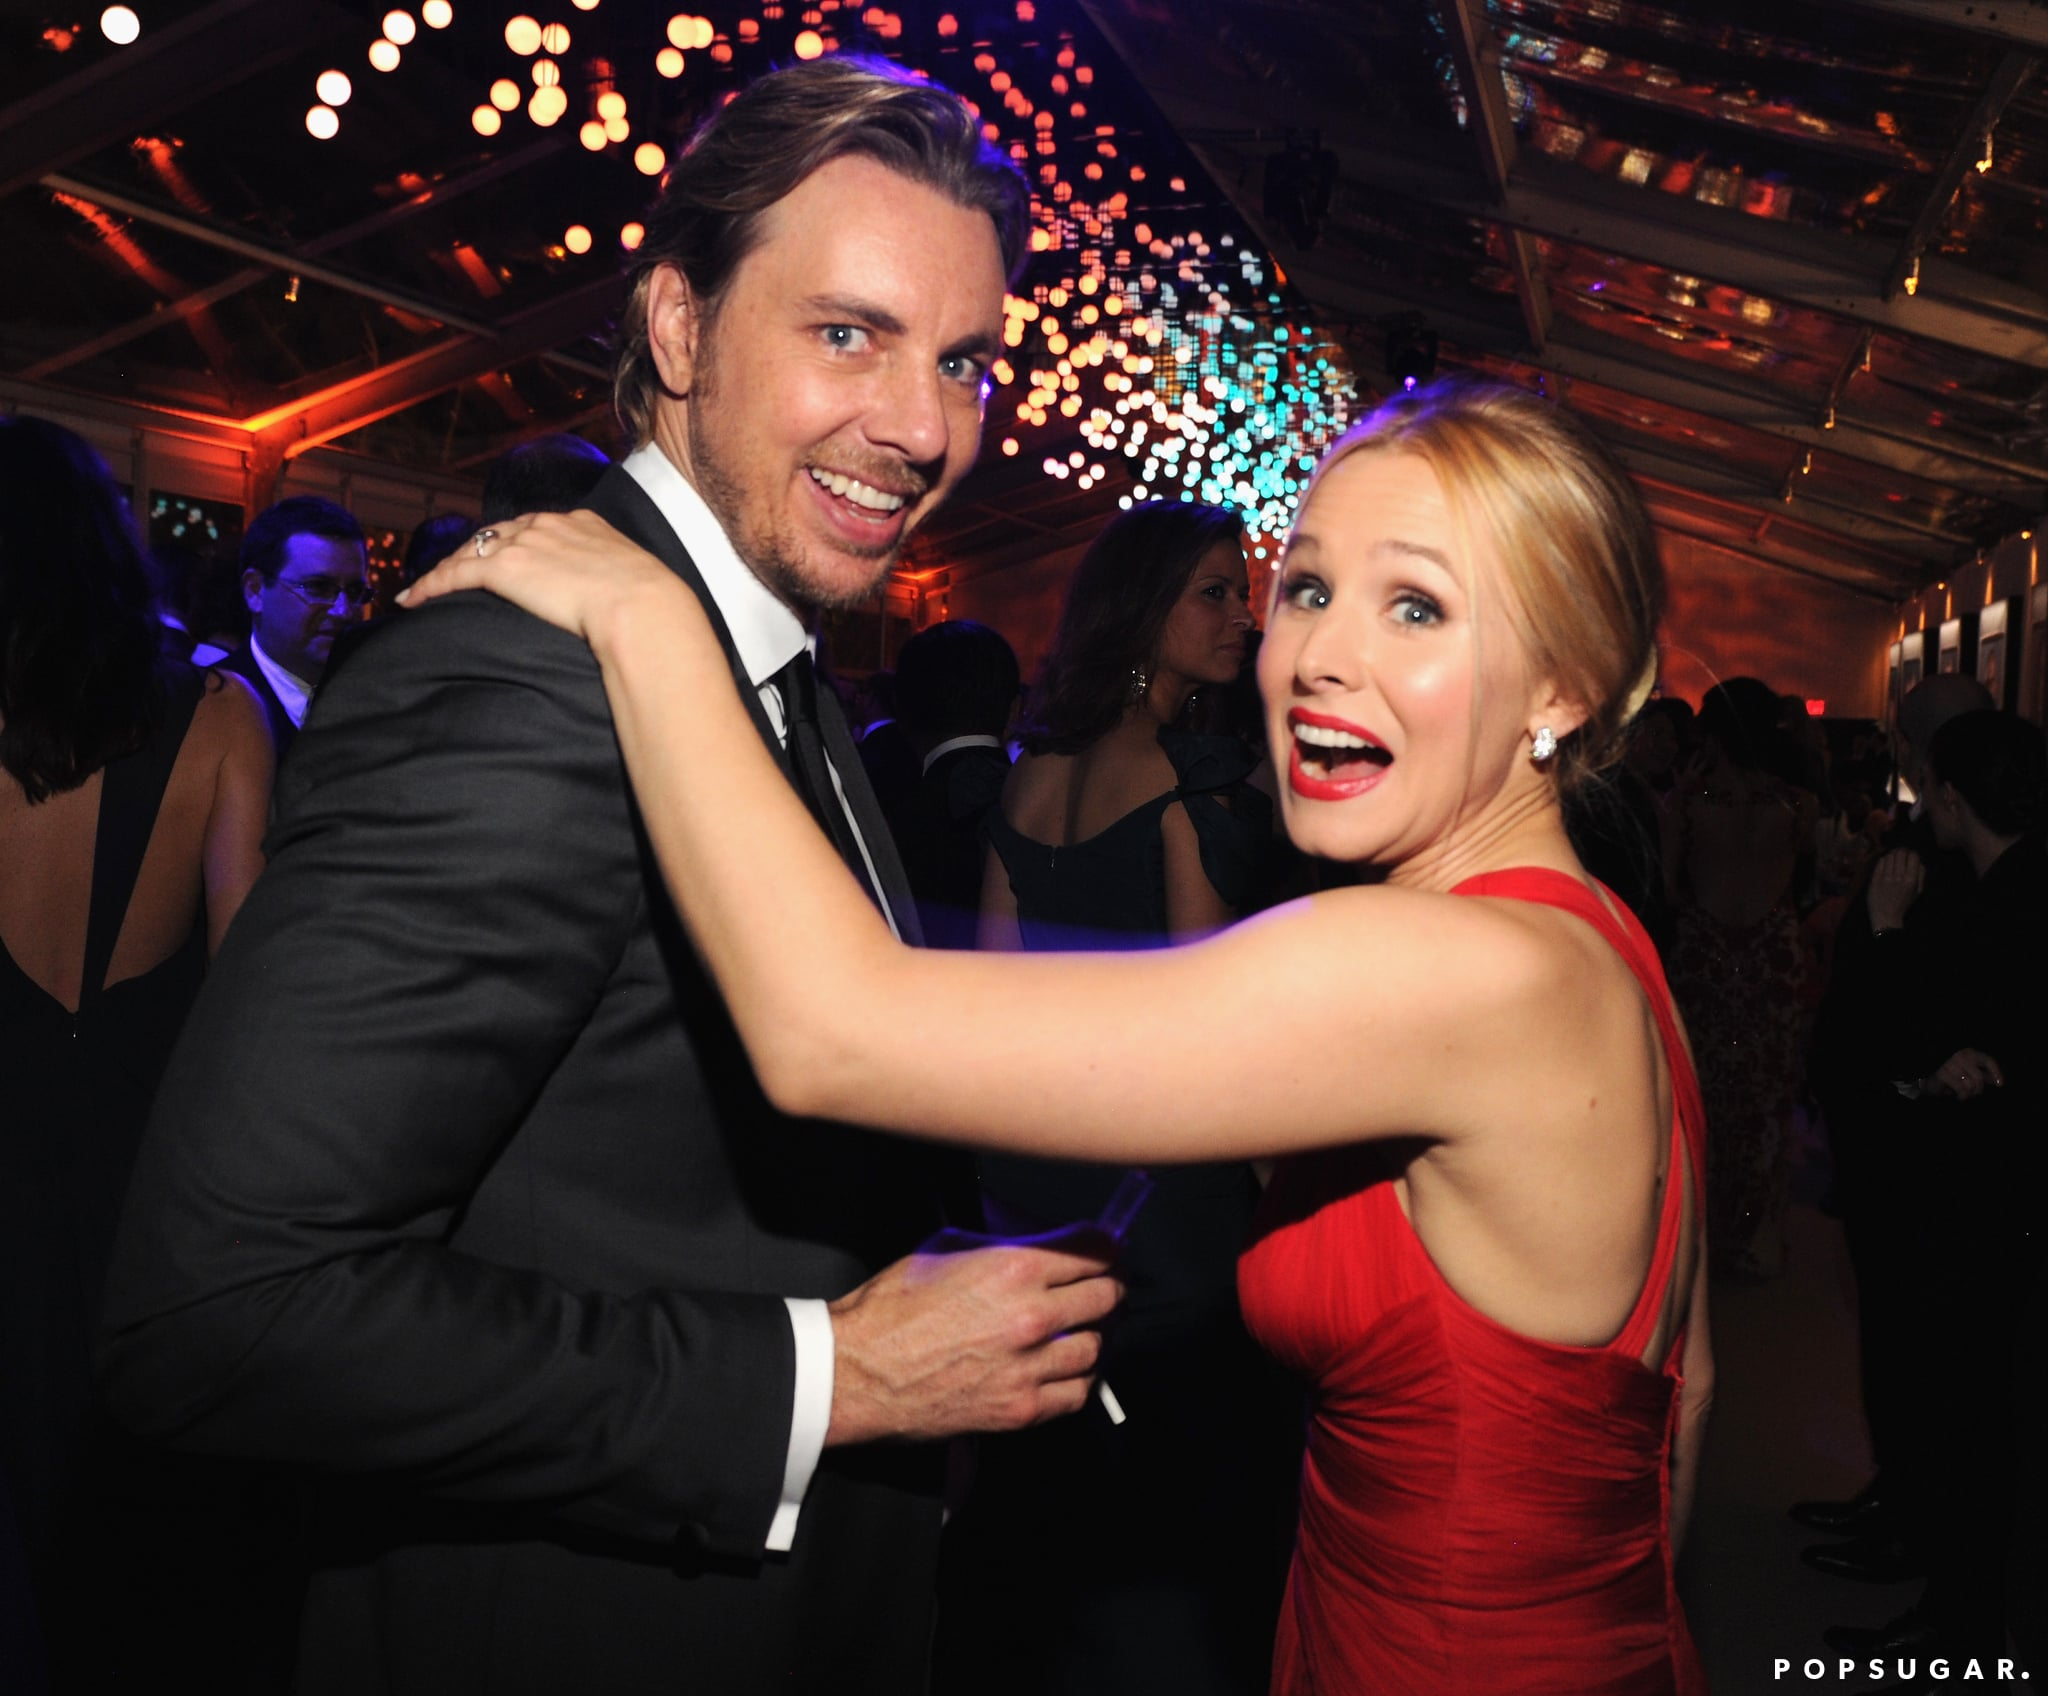 Kristen Bell and Dax Shepard shared a funny moment during the party.